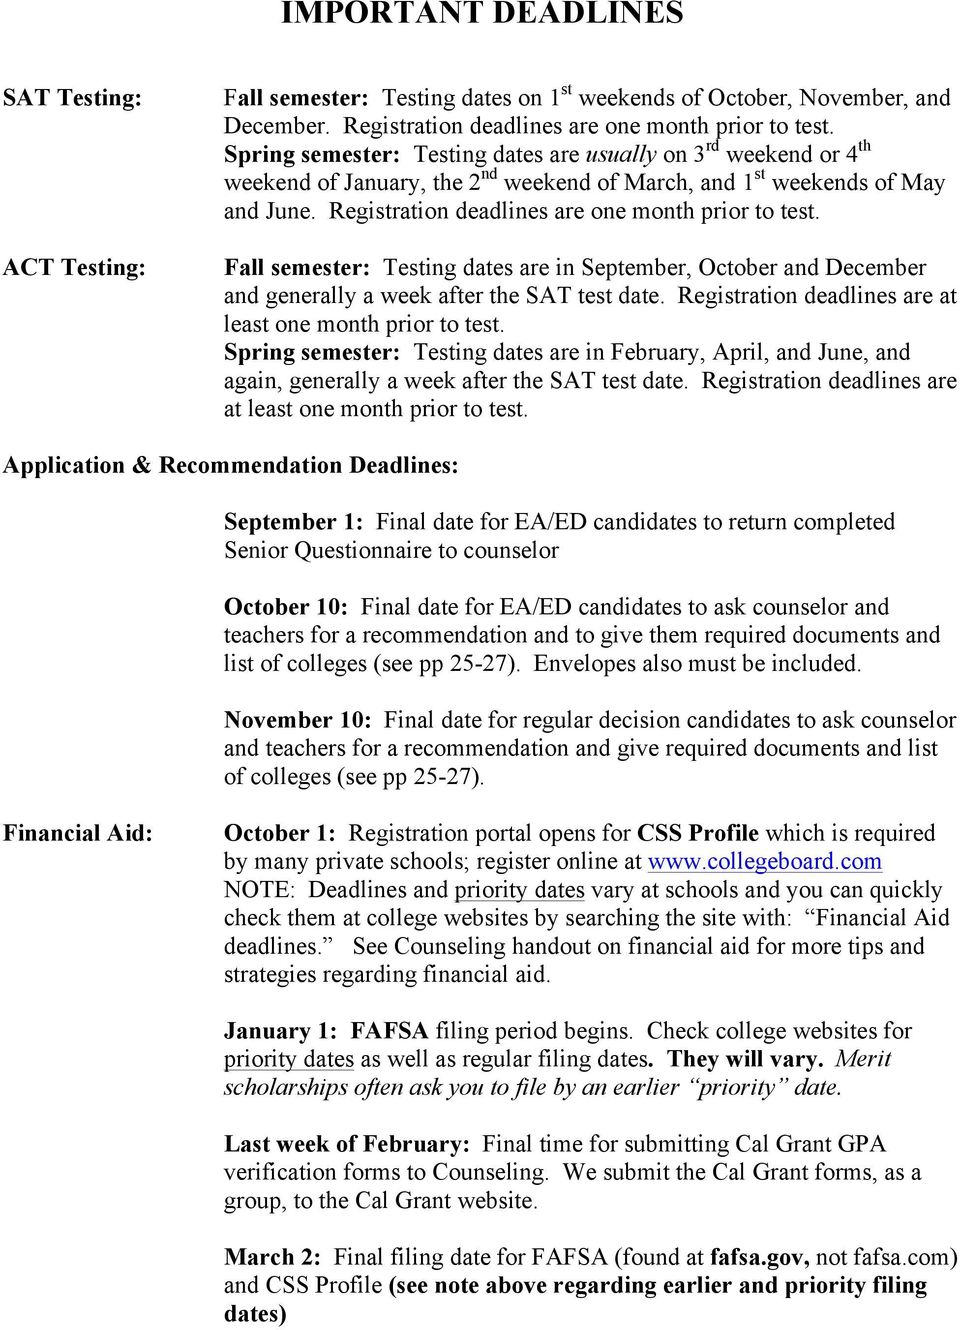 Fall semester: Testing dates are in September, October and December and generally a week after the SAT test date. Registration deadlines are at least one month prior to test.